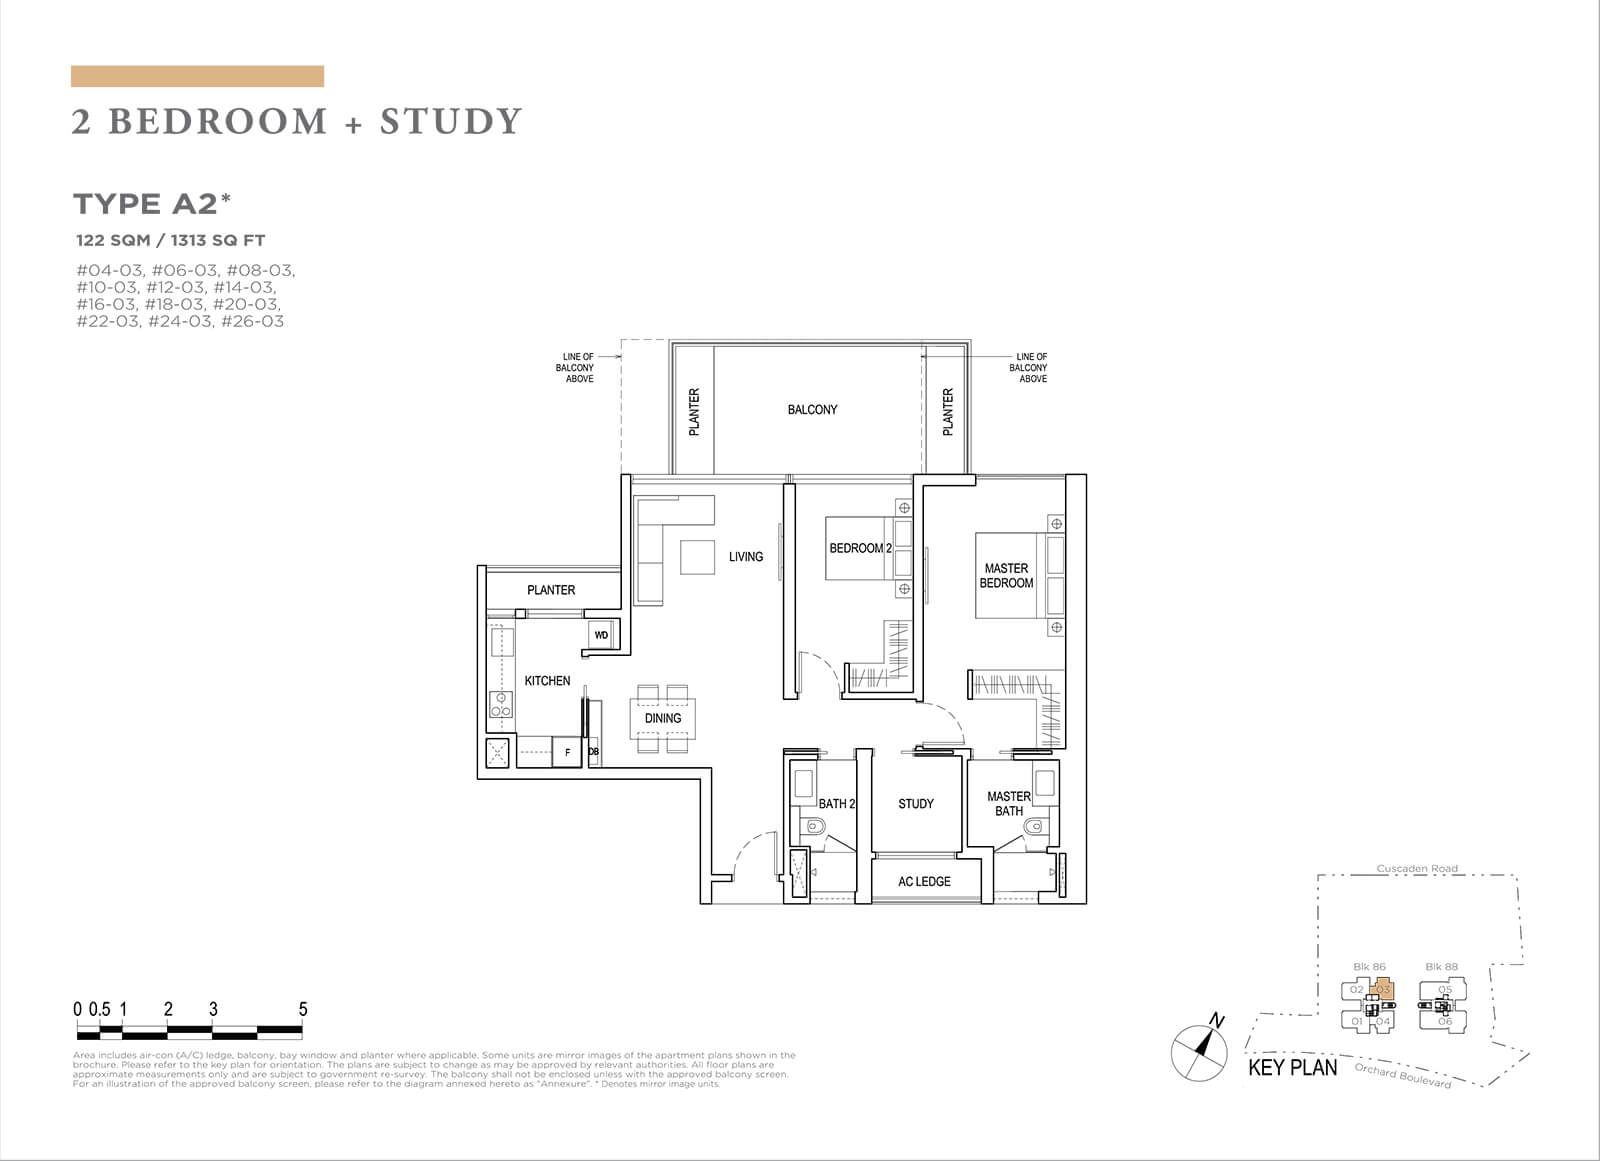 Boulevard 88 Floor Plan 2 Bedroom Study Type A2